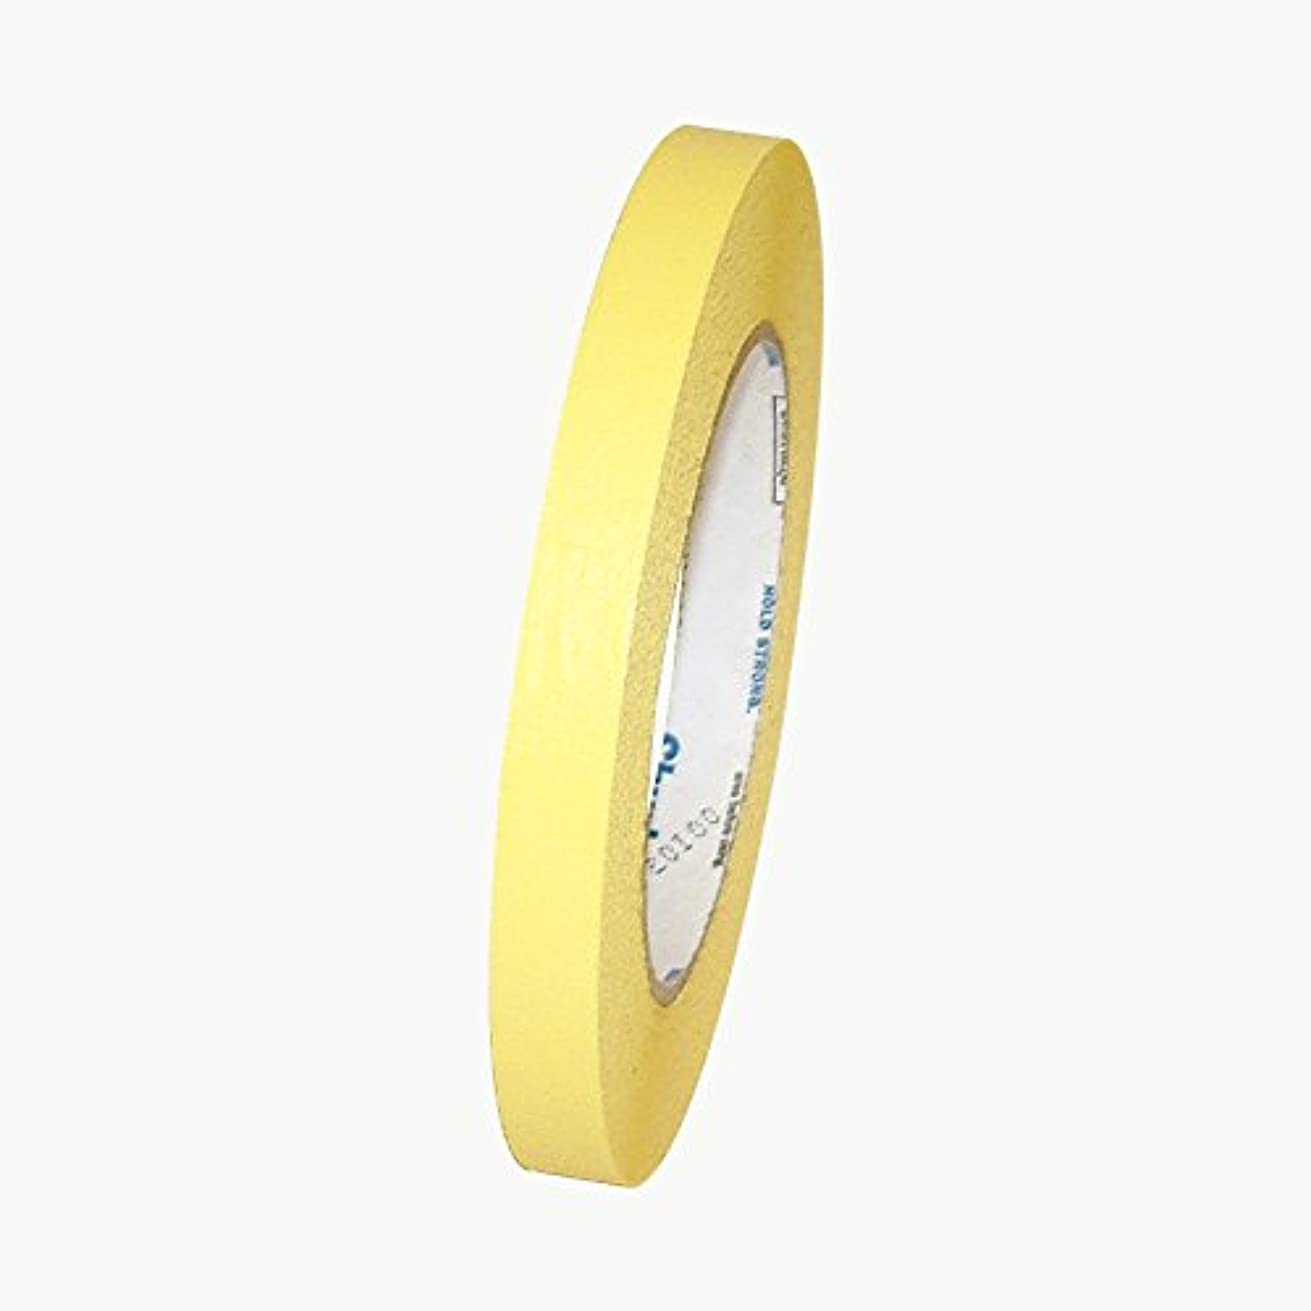 Shurtape CP-632/YEL0560 CP-631 Colored Masking Tape: 1/2